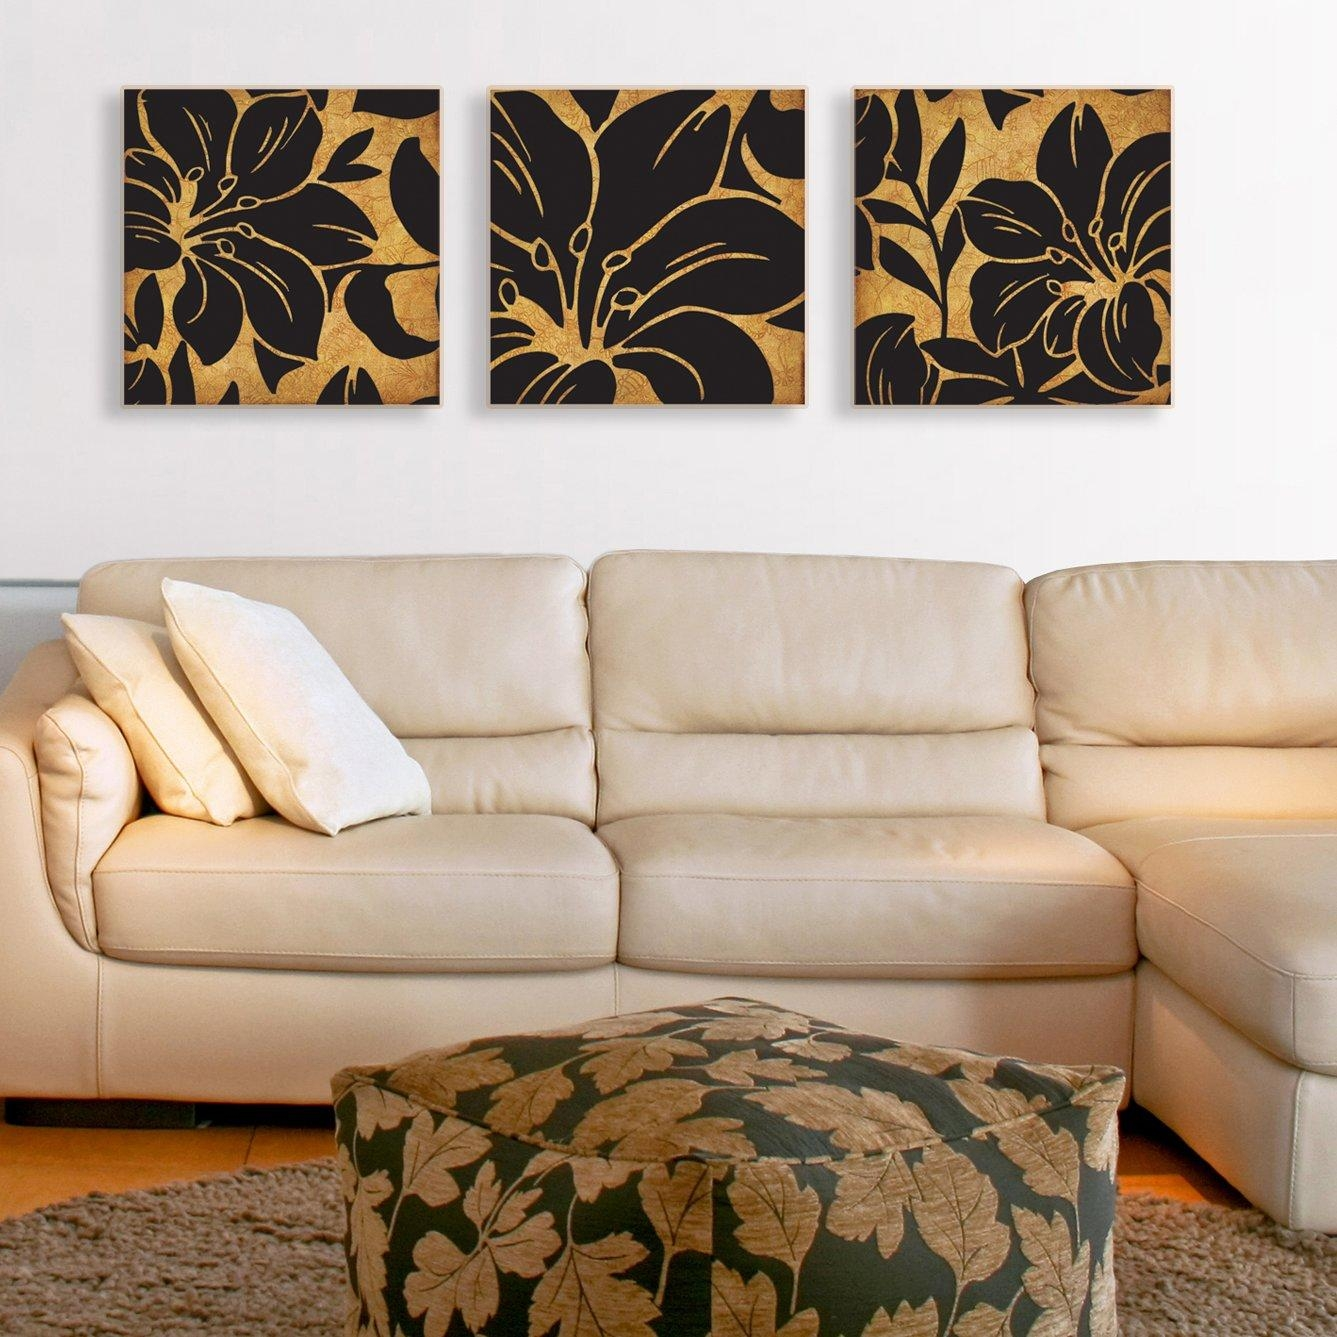 3 Piece Canvas Wall Art | Roselawnlutheran Pertaining To Canvas Wall Art 3 Piece Sets (Image 3 of 20)